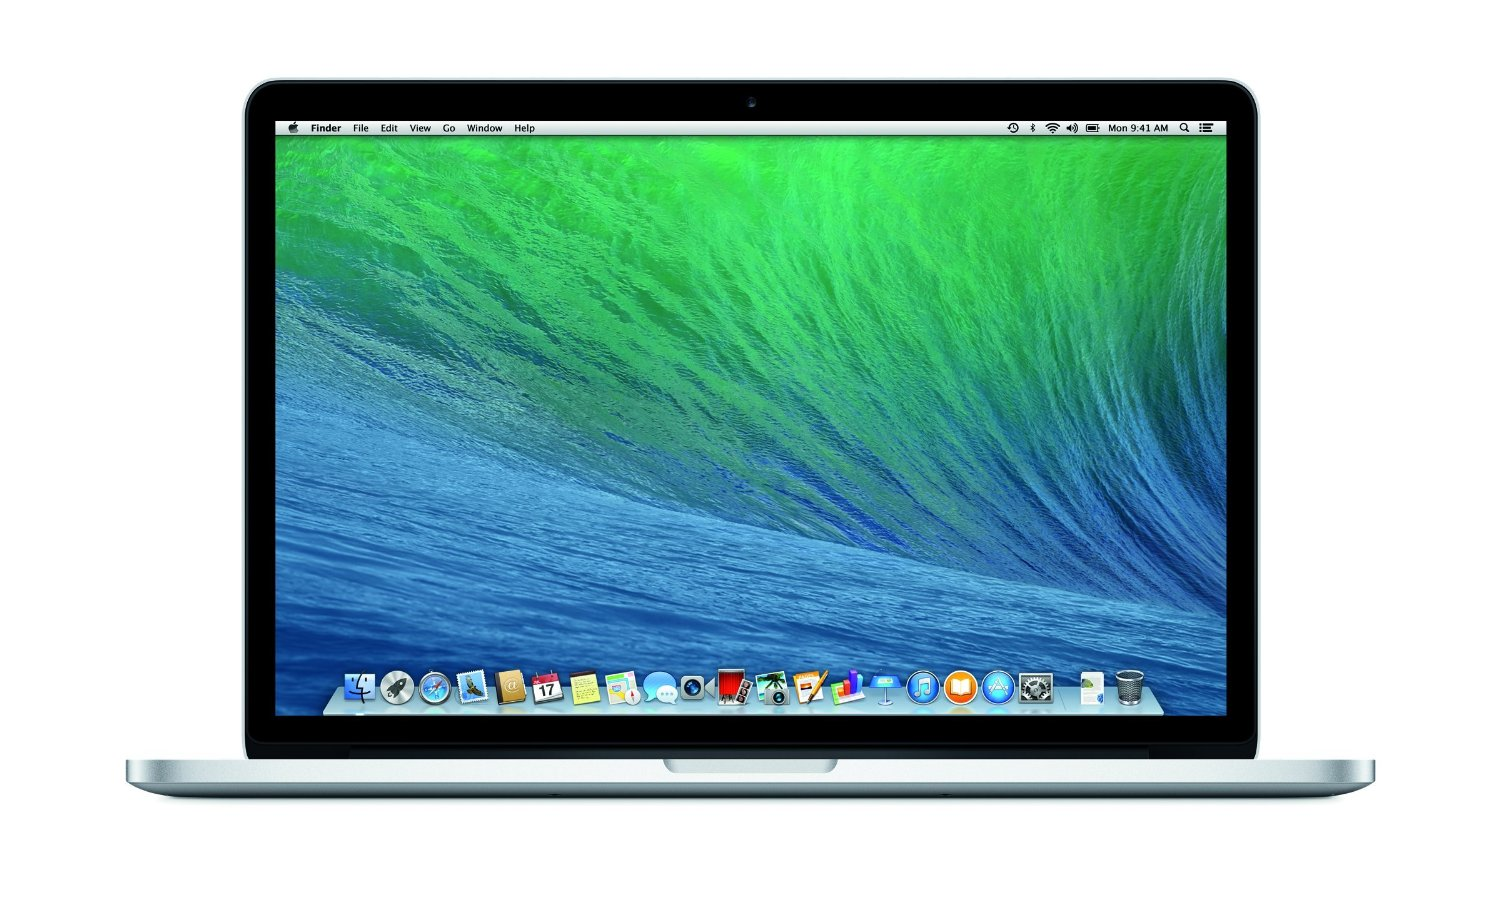 Amazon.com : Apple MacBook Pro MGXA2LL/A 15.4-Inch Laptop with Retina Display (NEWEST VERSION)